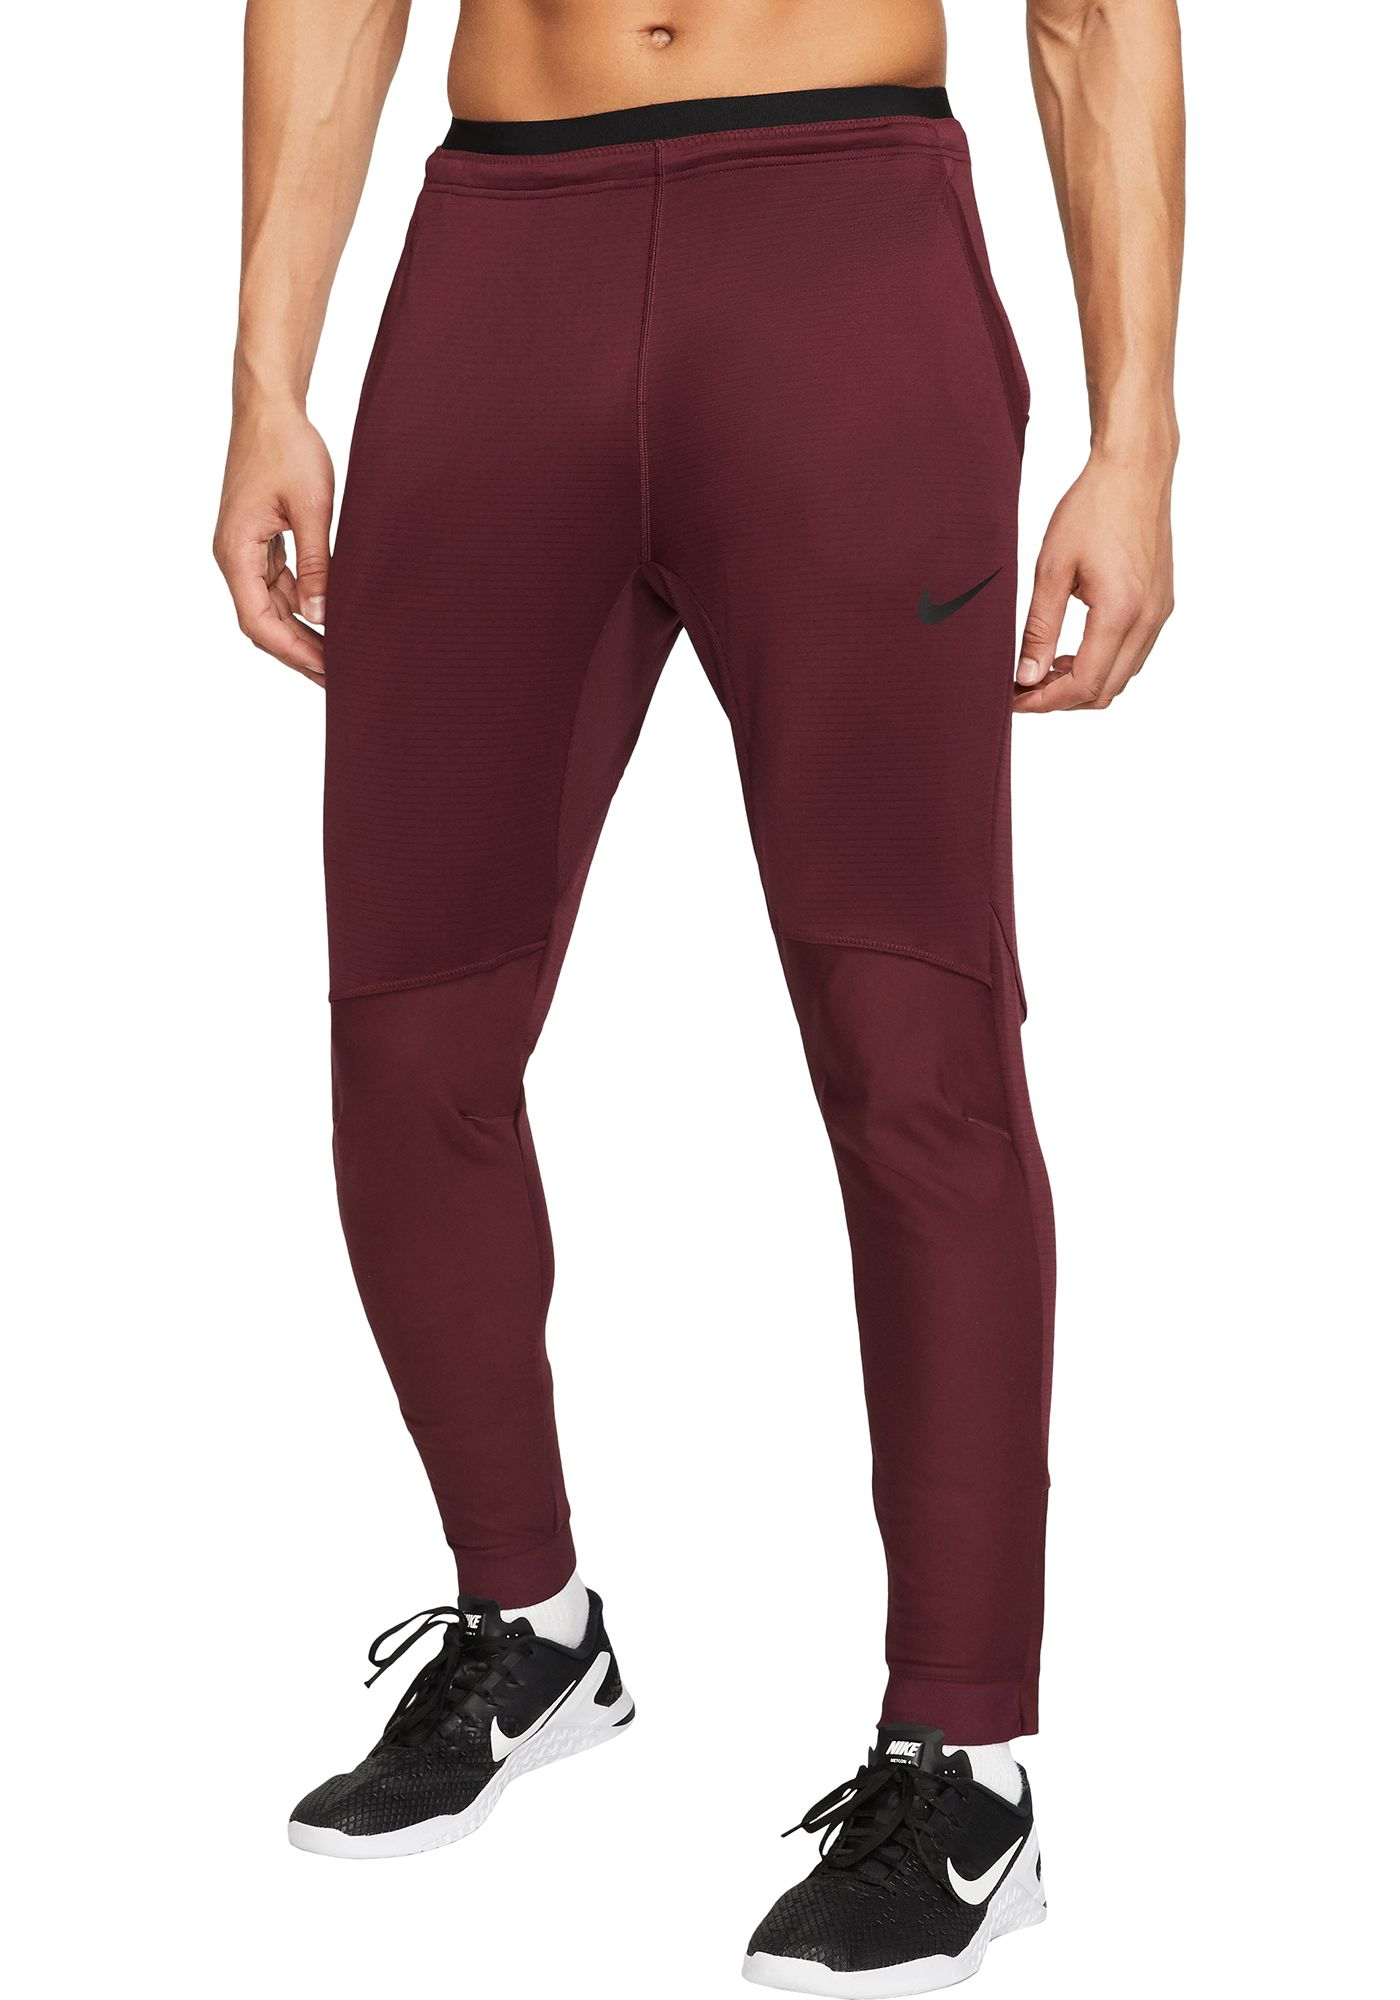 Nike Men's Pro Pants (Regular and Big & Tall)